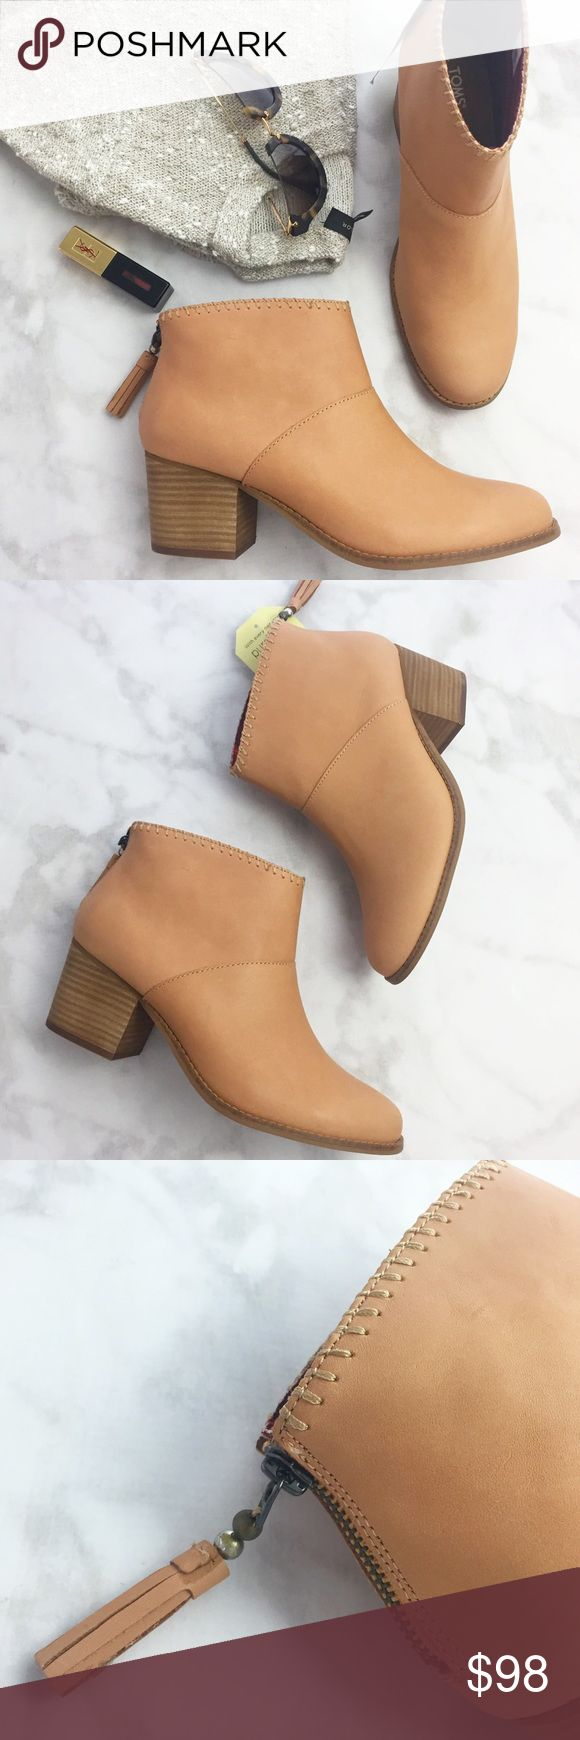 "TOMS Tan Leather Ankle Boots Details: * Sizes 8.5 & 9 * Tan leather * Whipstitch detailing * Back zip with tassel zipper pull * 2.5"" heel * Brand new in box 12131602 TOMS Shoes Ankle Boots & Booties"